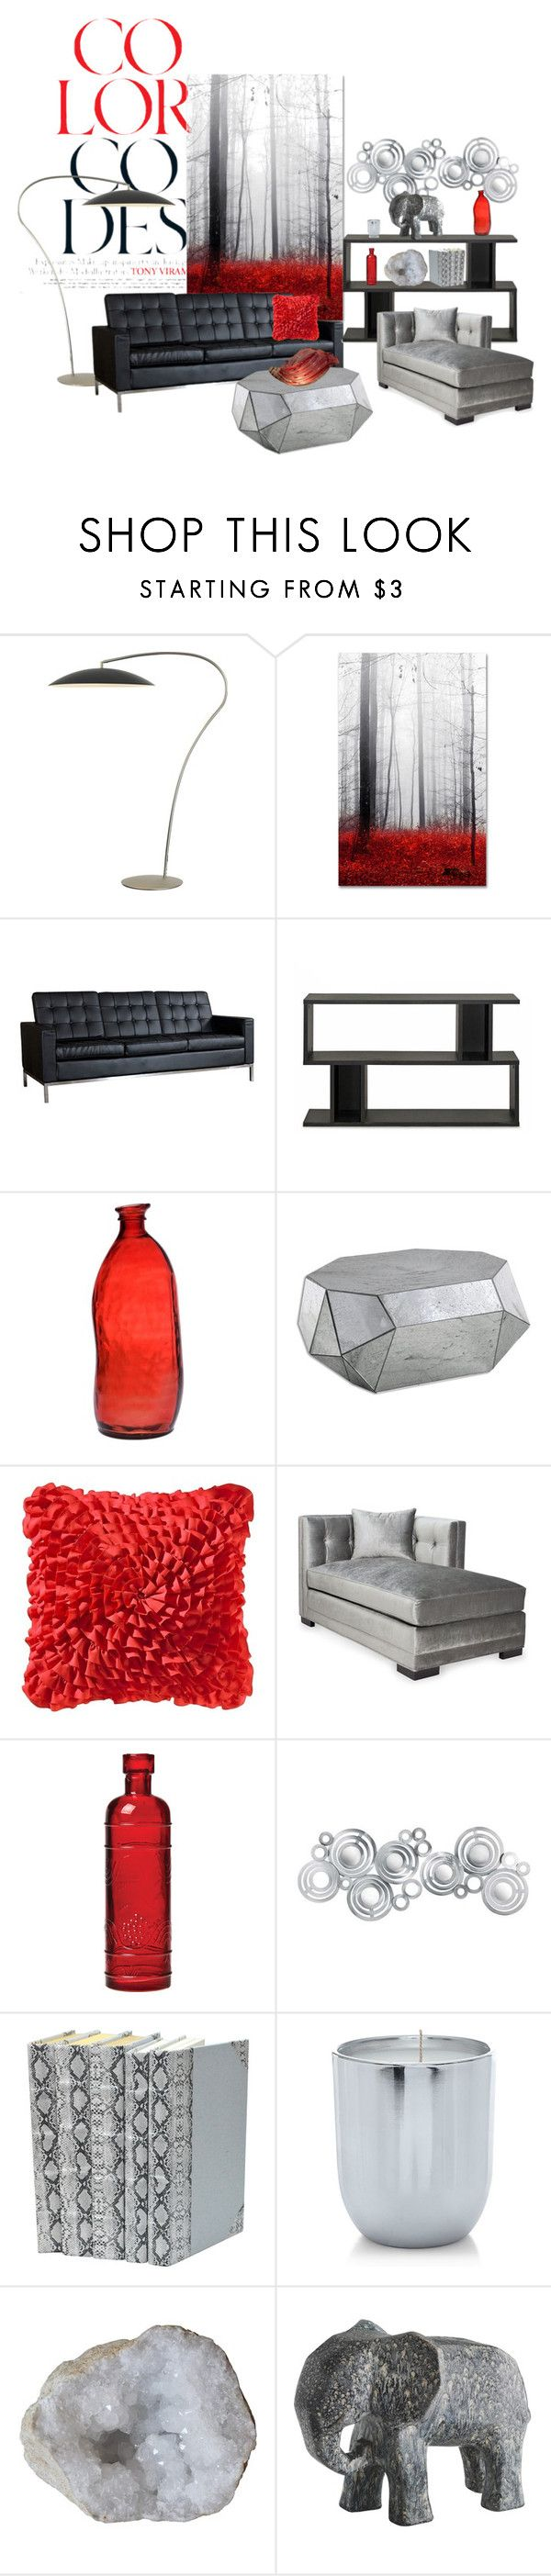 """Black, Grey and Red Living Room"" by rubberchicken-queen ❤ liked on Polyvore featuring interior, interiors, interior design, home, home decor, interior decorating, CB2, Trademark Fine Art, Dot & Bo and Baxton Studio"